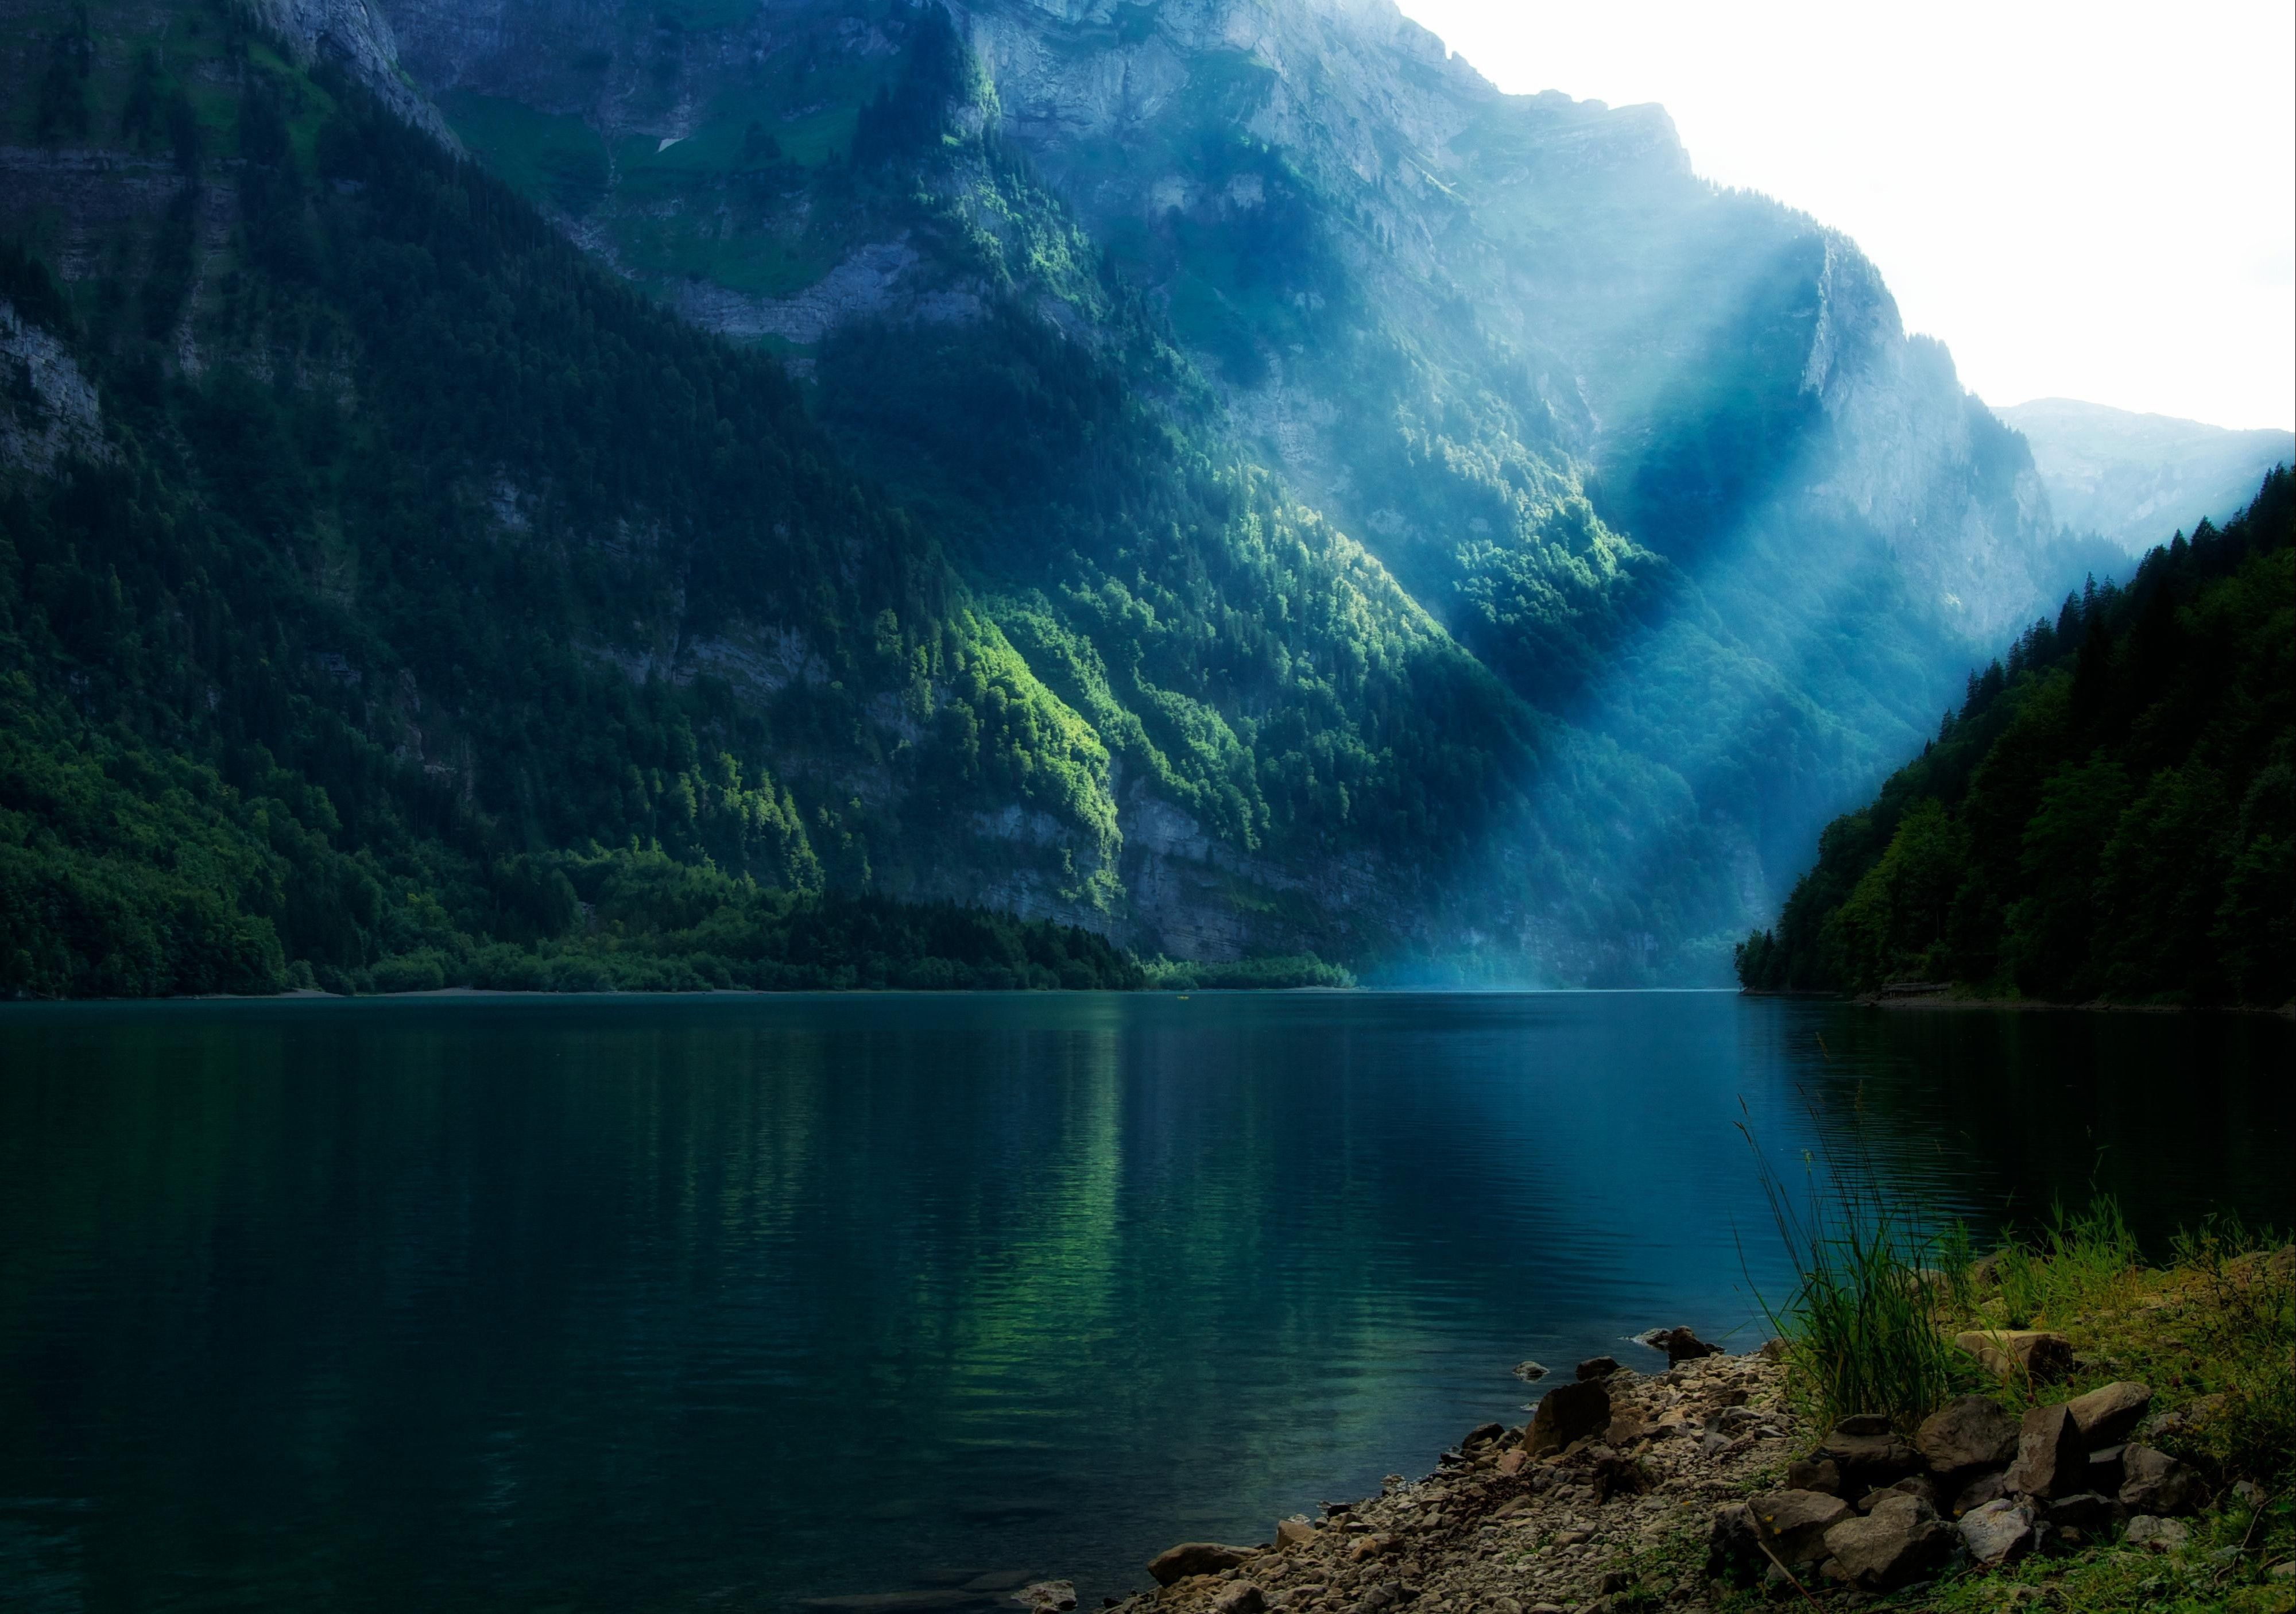 Lakes landscapes mountains sunlight sunray (3999x2811, landscapes, mountains, sunlight)  via www.allwallpaper.in